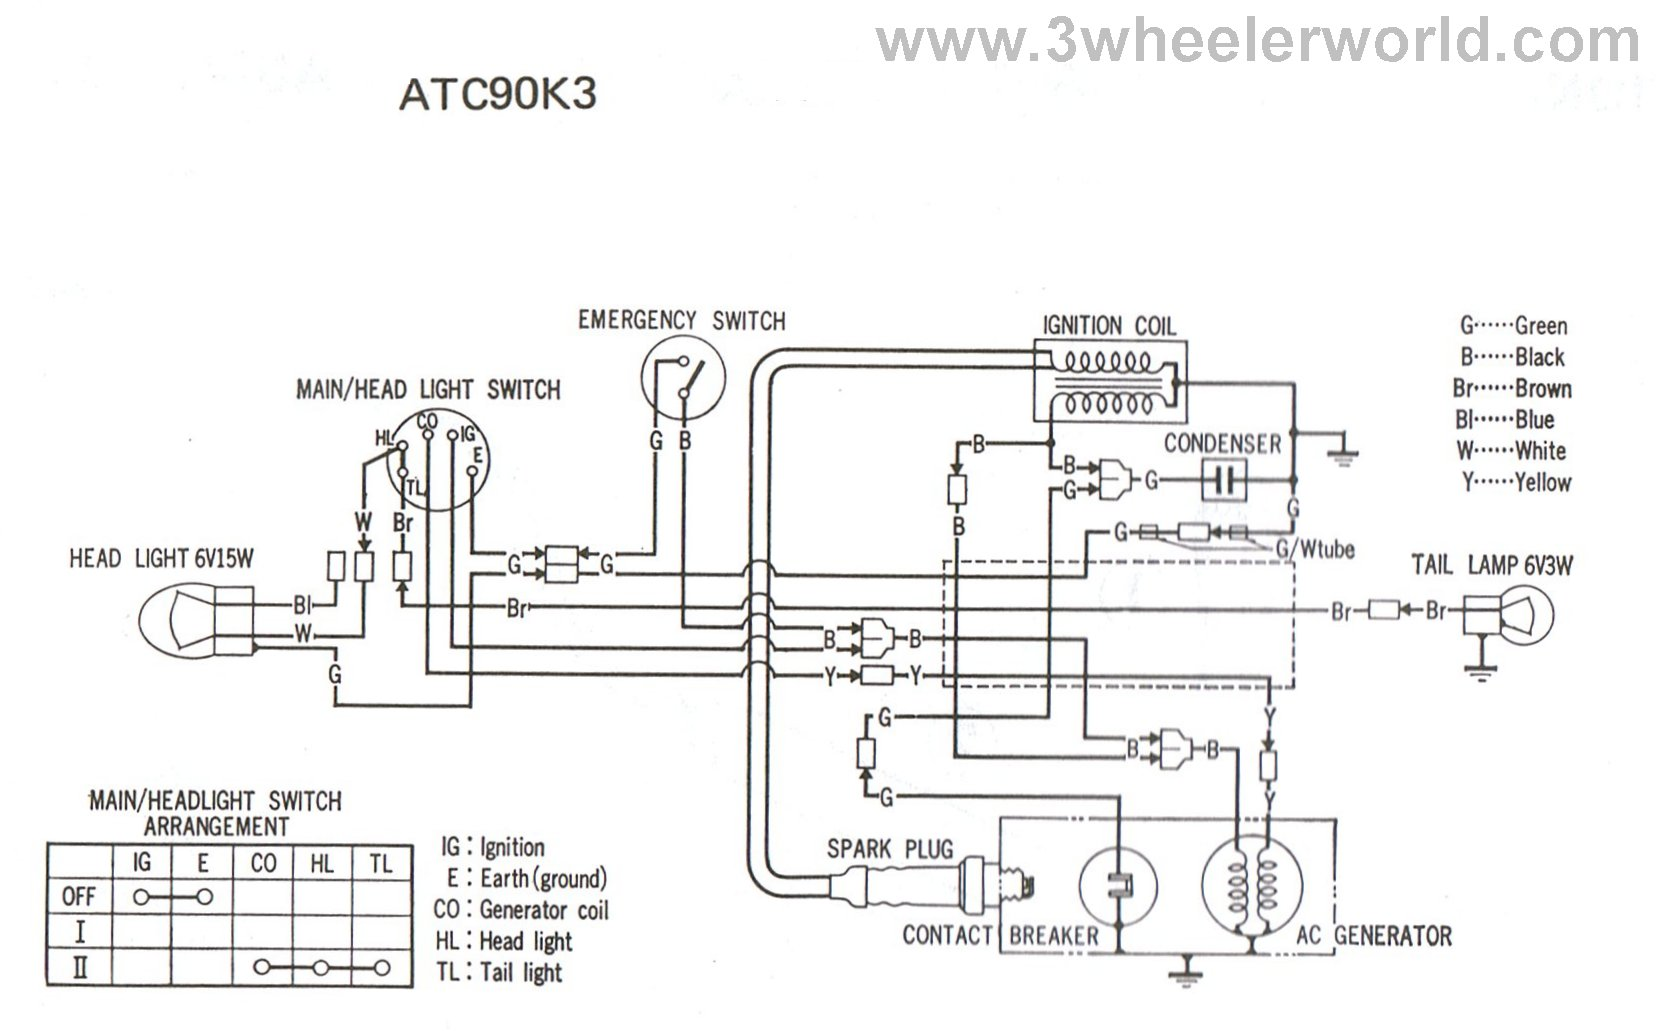 ATC90K3HM 3 wheeler world tech help honda wiring diagrams polaris trail boss 250 wiring diagram 1991 at mr168.co